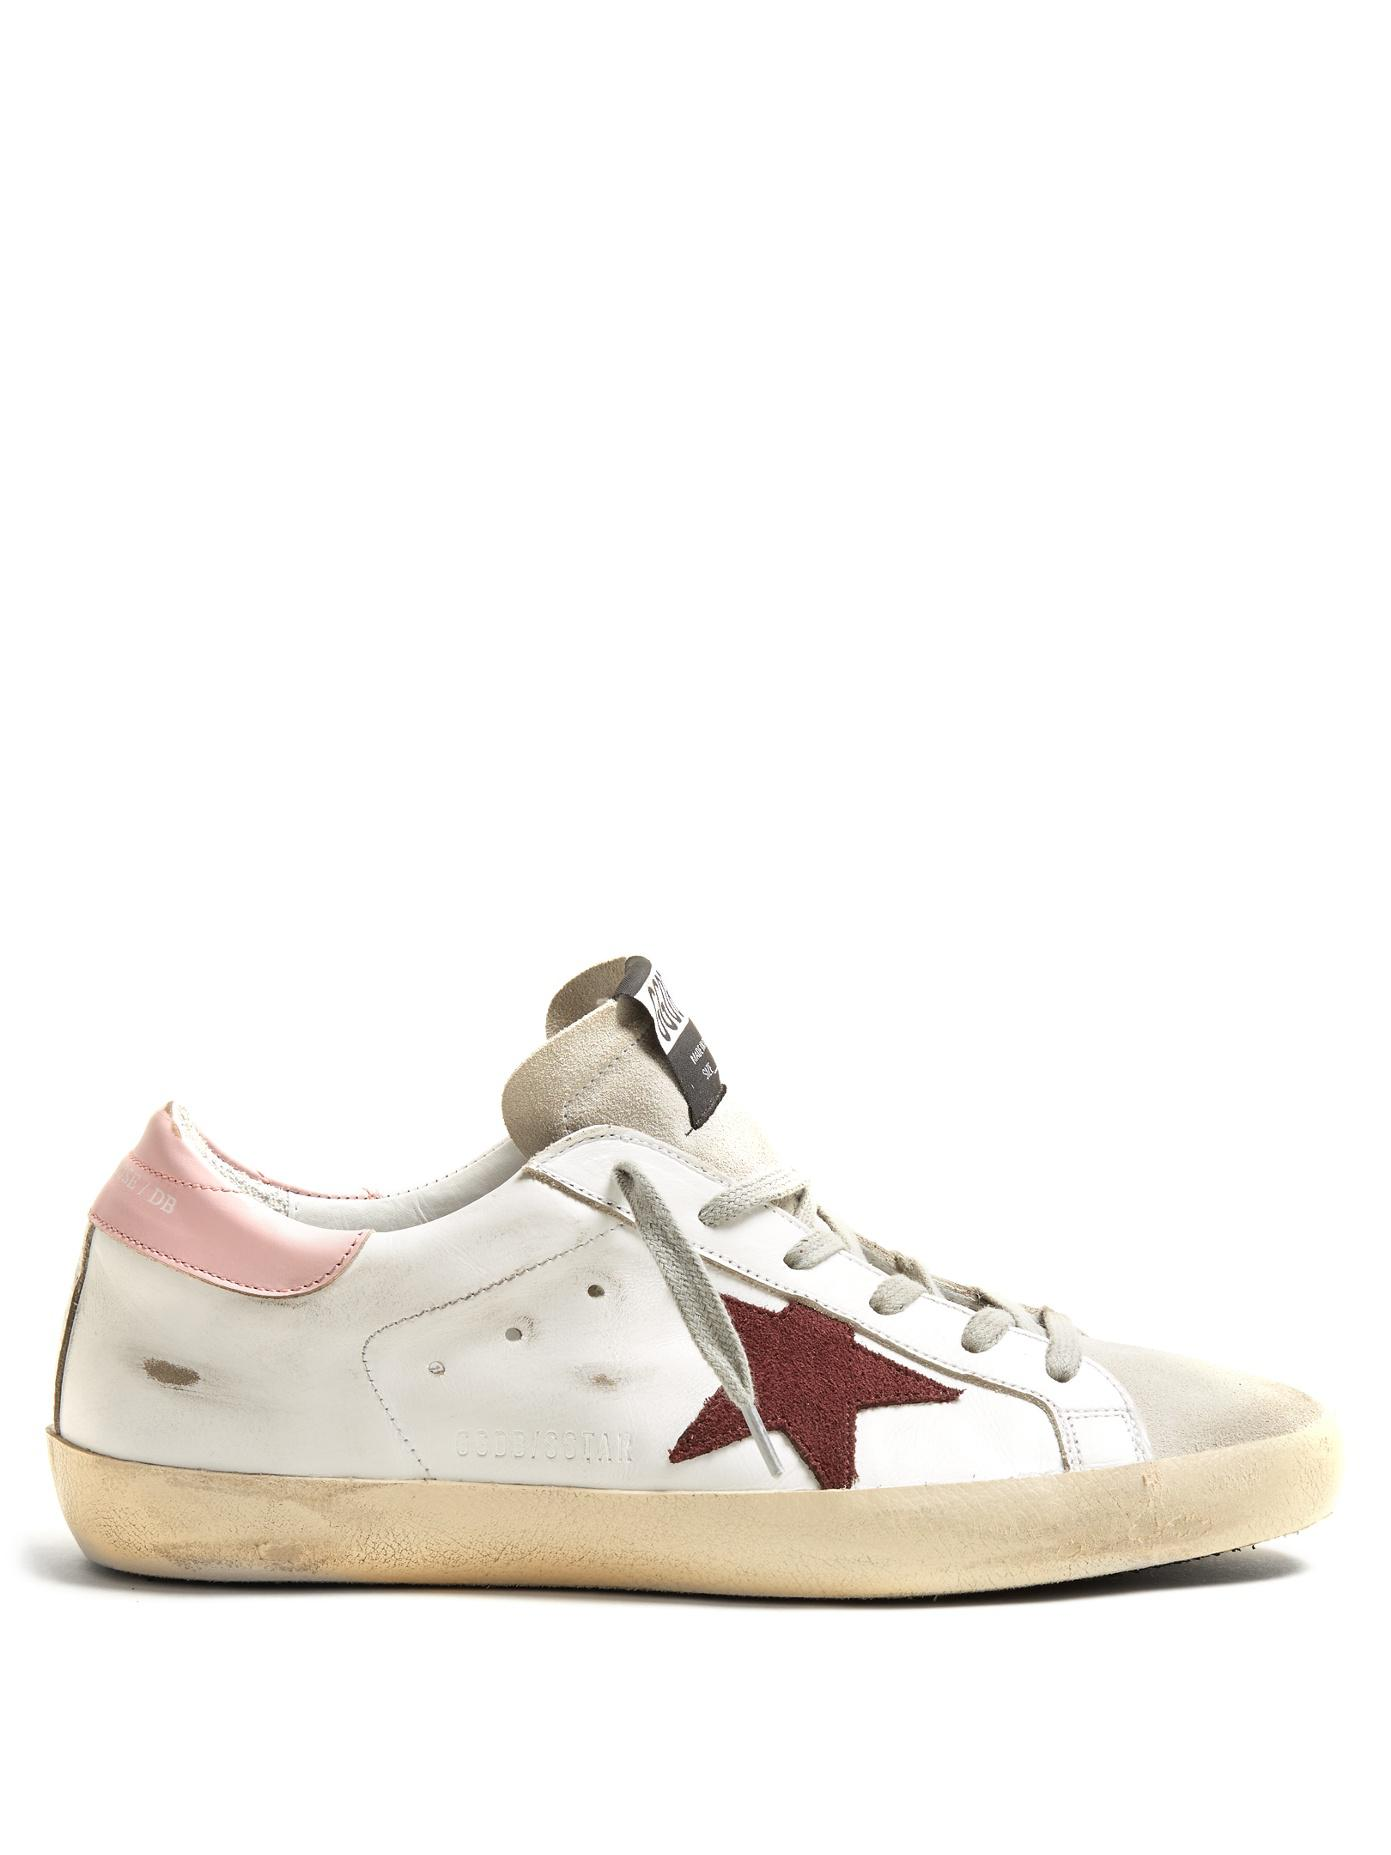 Cheap Comfortable How Much Online Golden Goose Burgundy Superstar Low Sneakers Sale Choice Wiki Sale Online BXiMi